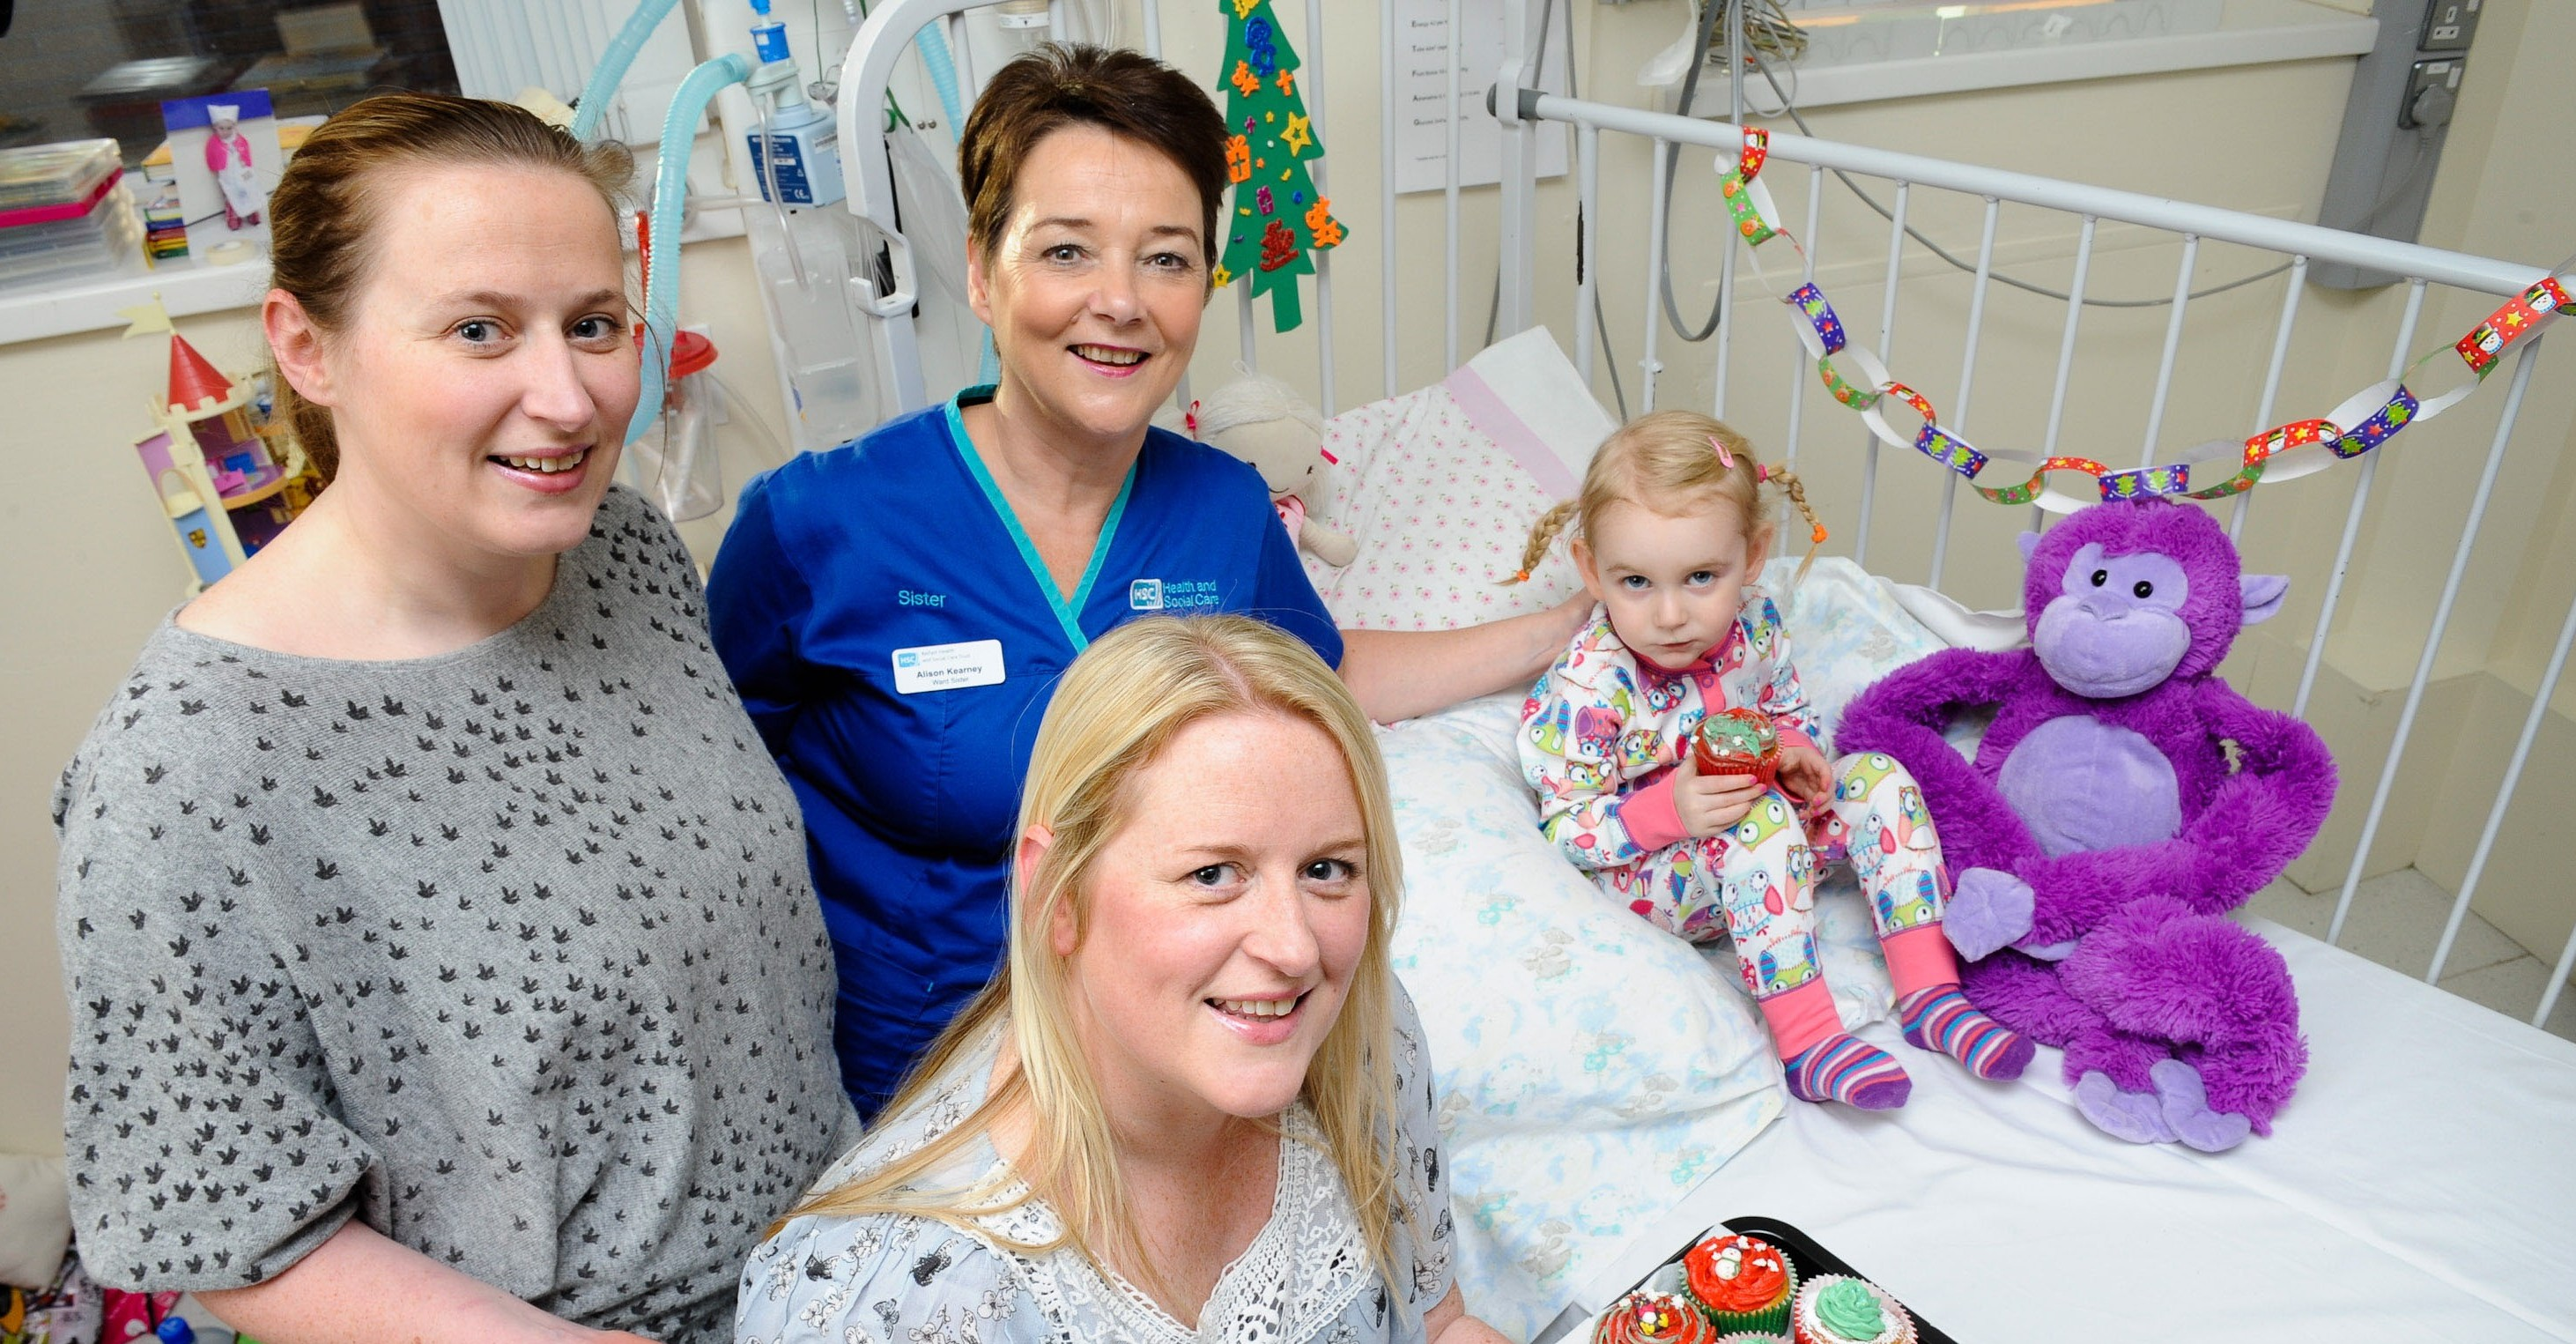 Sisters plan 'Random Acts of Kindness' for Unsung Heroes